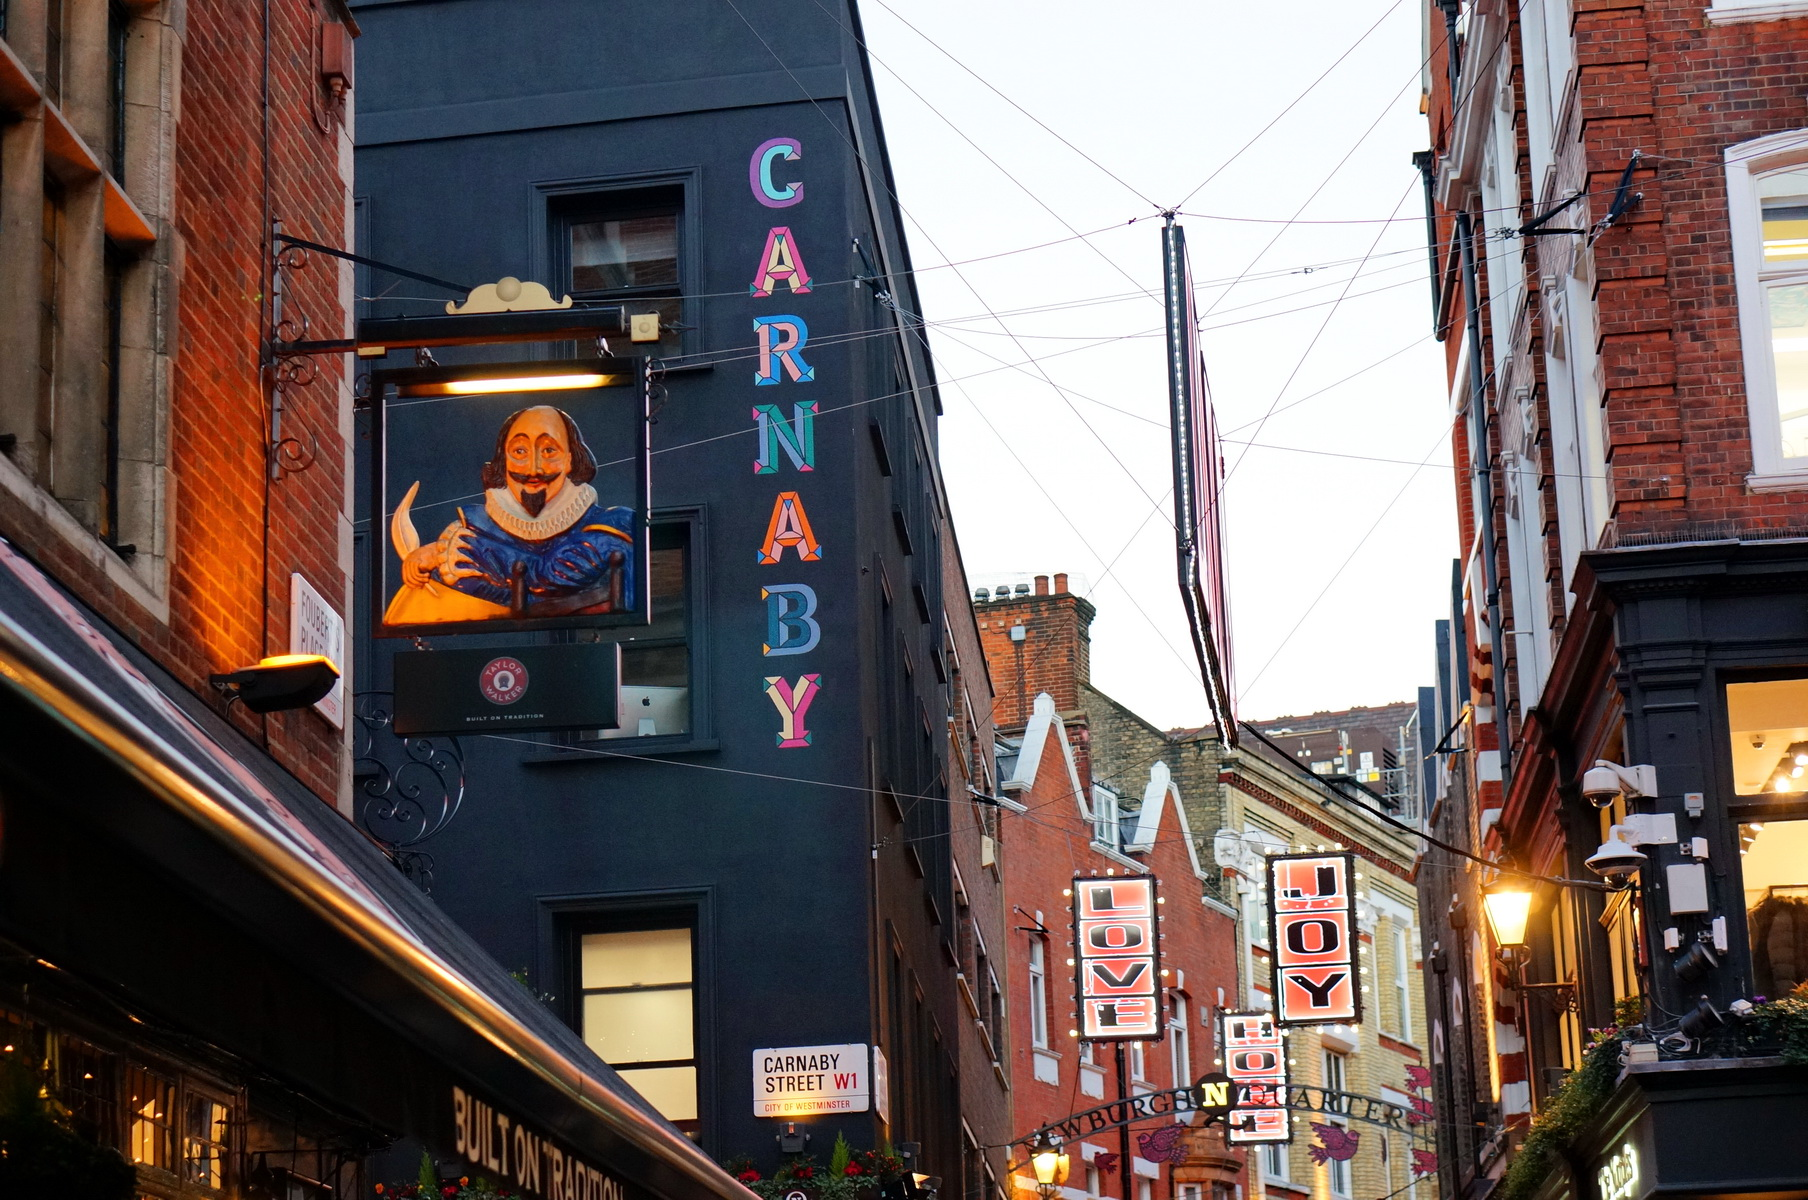 londres, london, soho, carnaby street